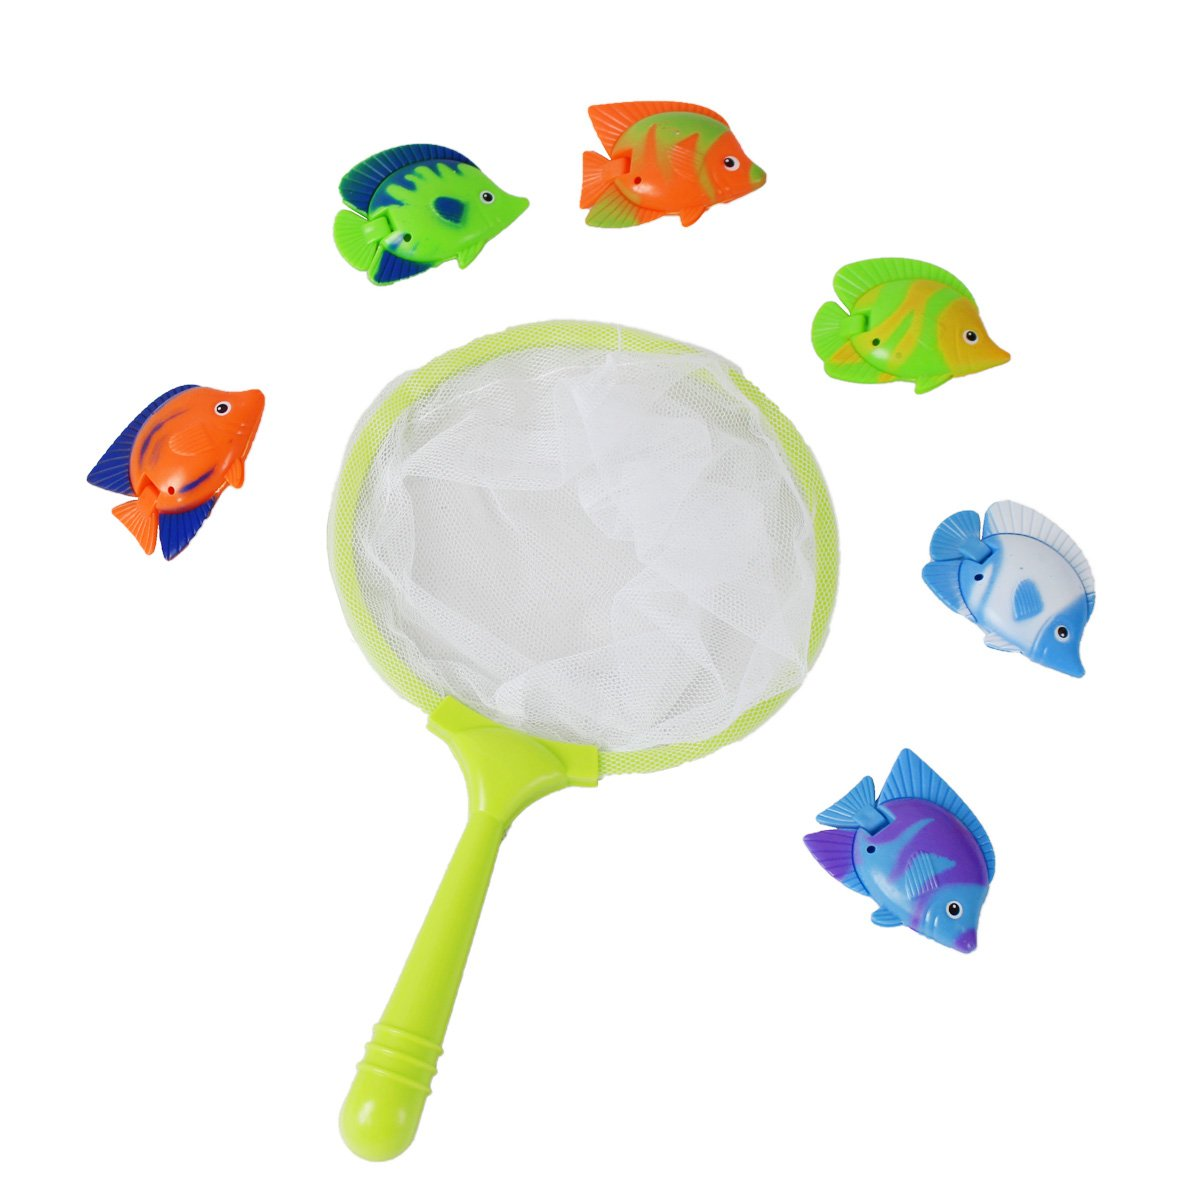 CatchStar Diving Fish Pool Toys Durable Toys Easy Catch Sink Water Games Bath Toys Kids